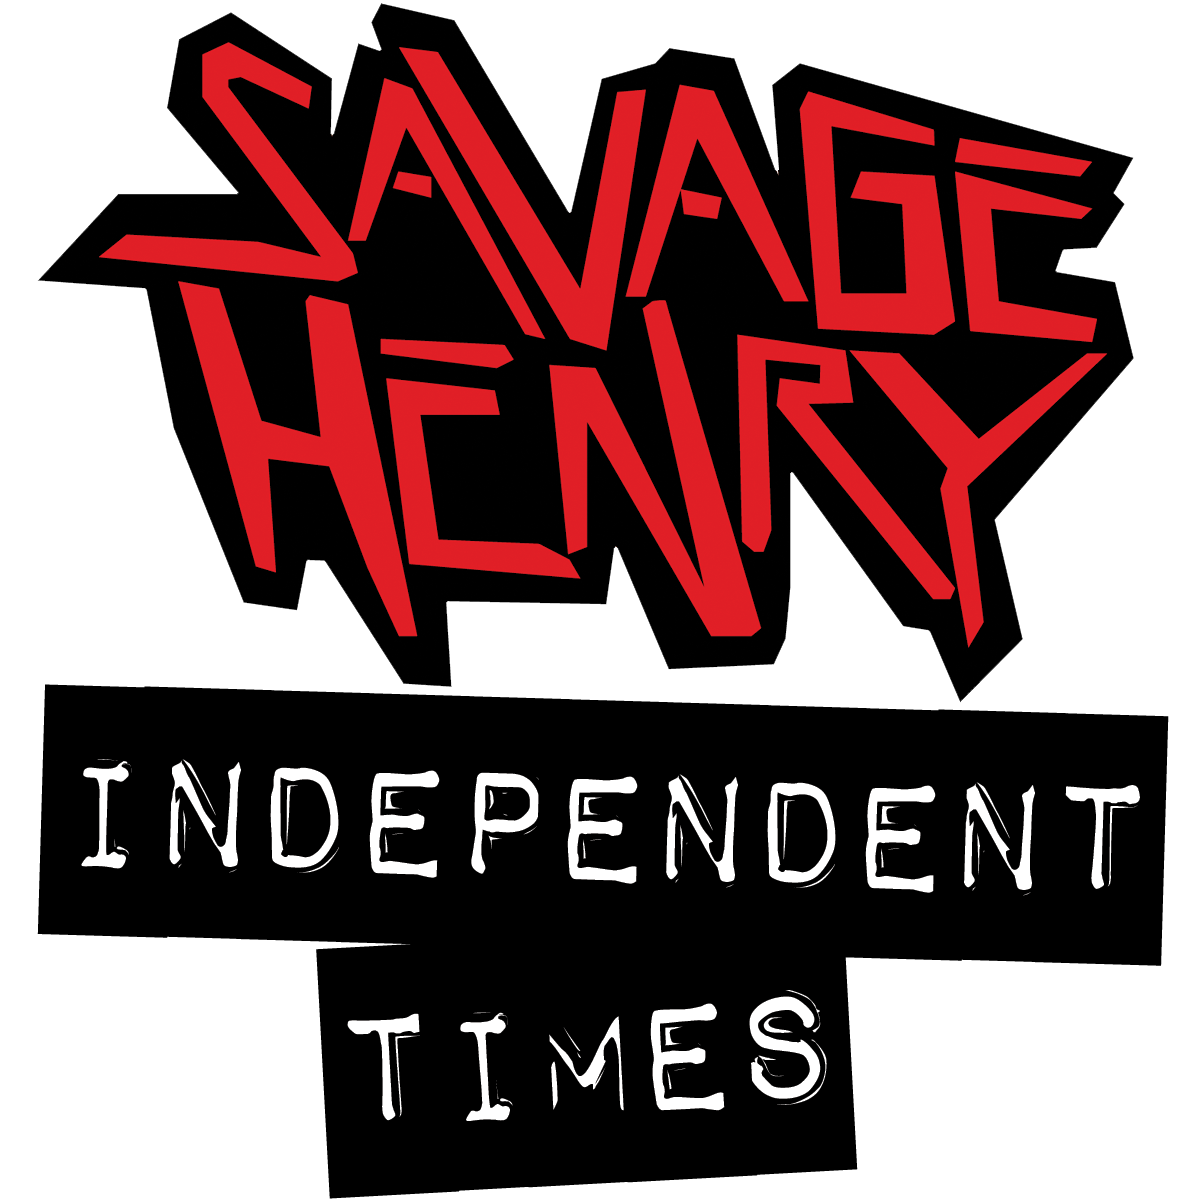 Episode #169 of the Savage Henry Magazine Radio Program